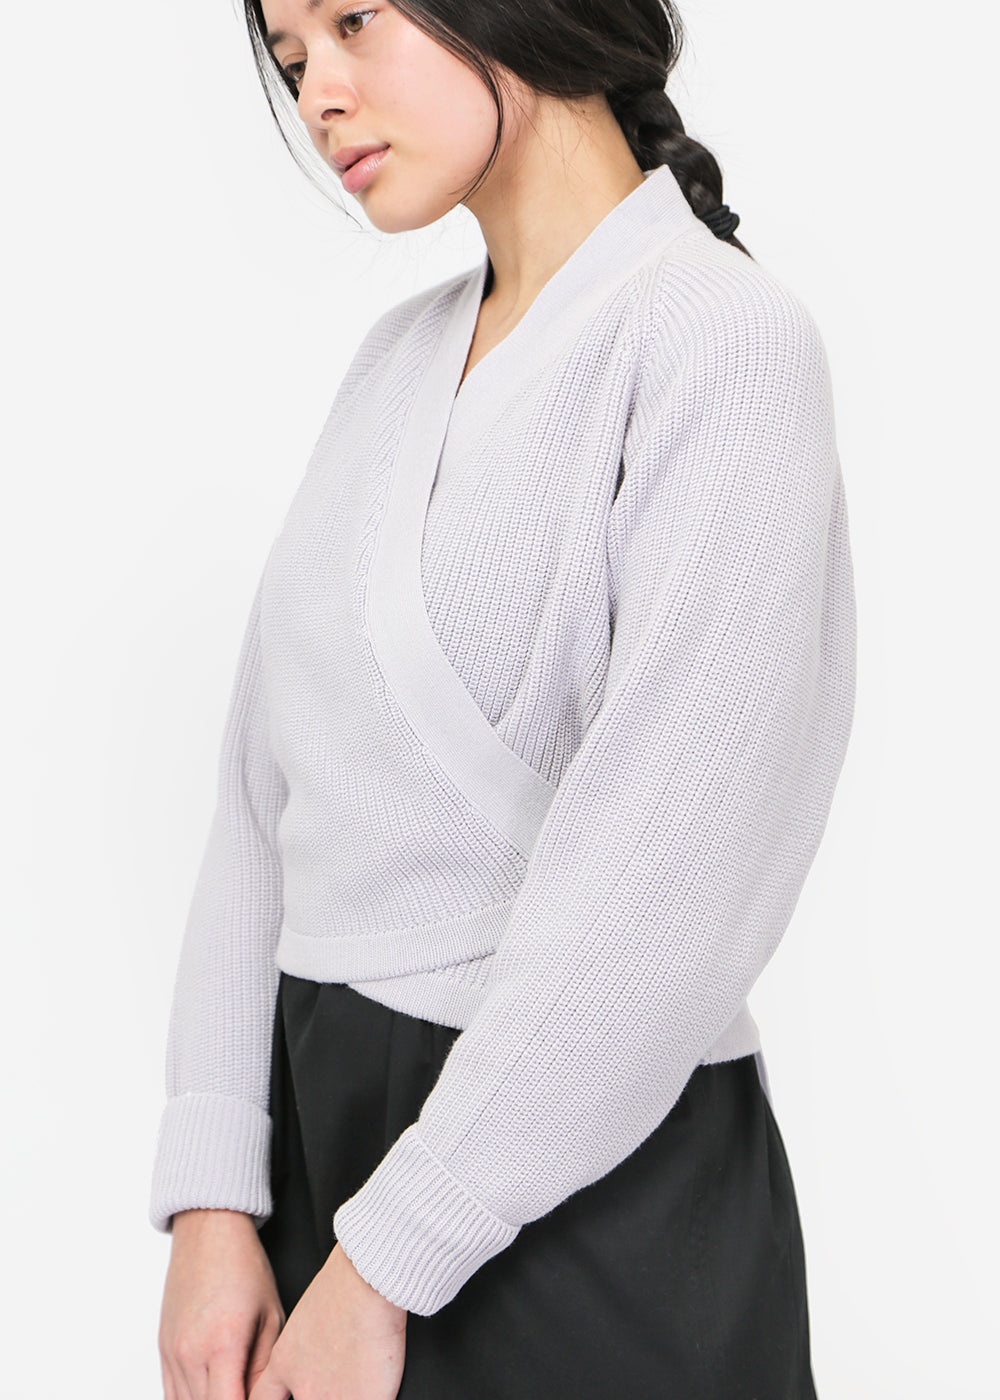 Kowtow Composure Cardigan — New Classics Studios